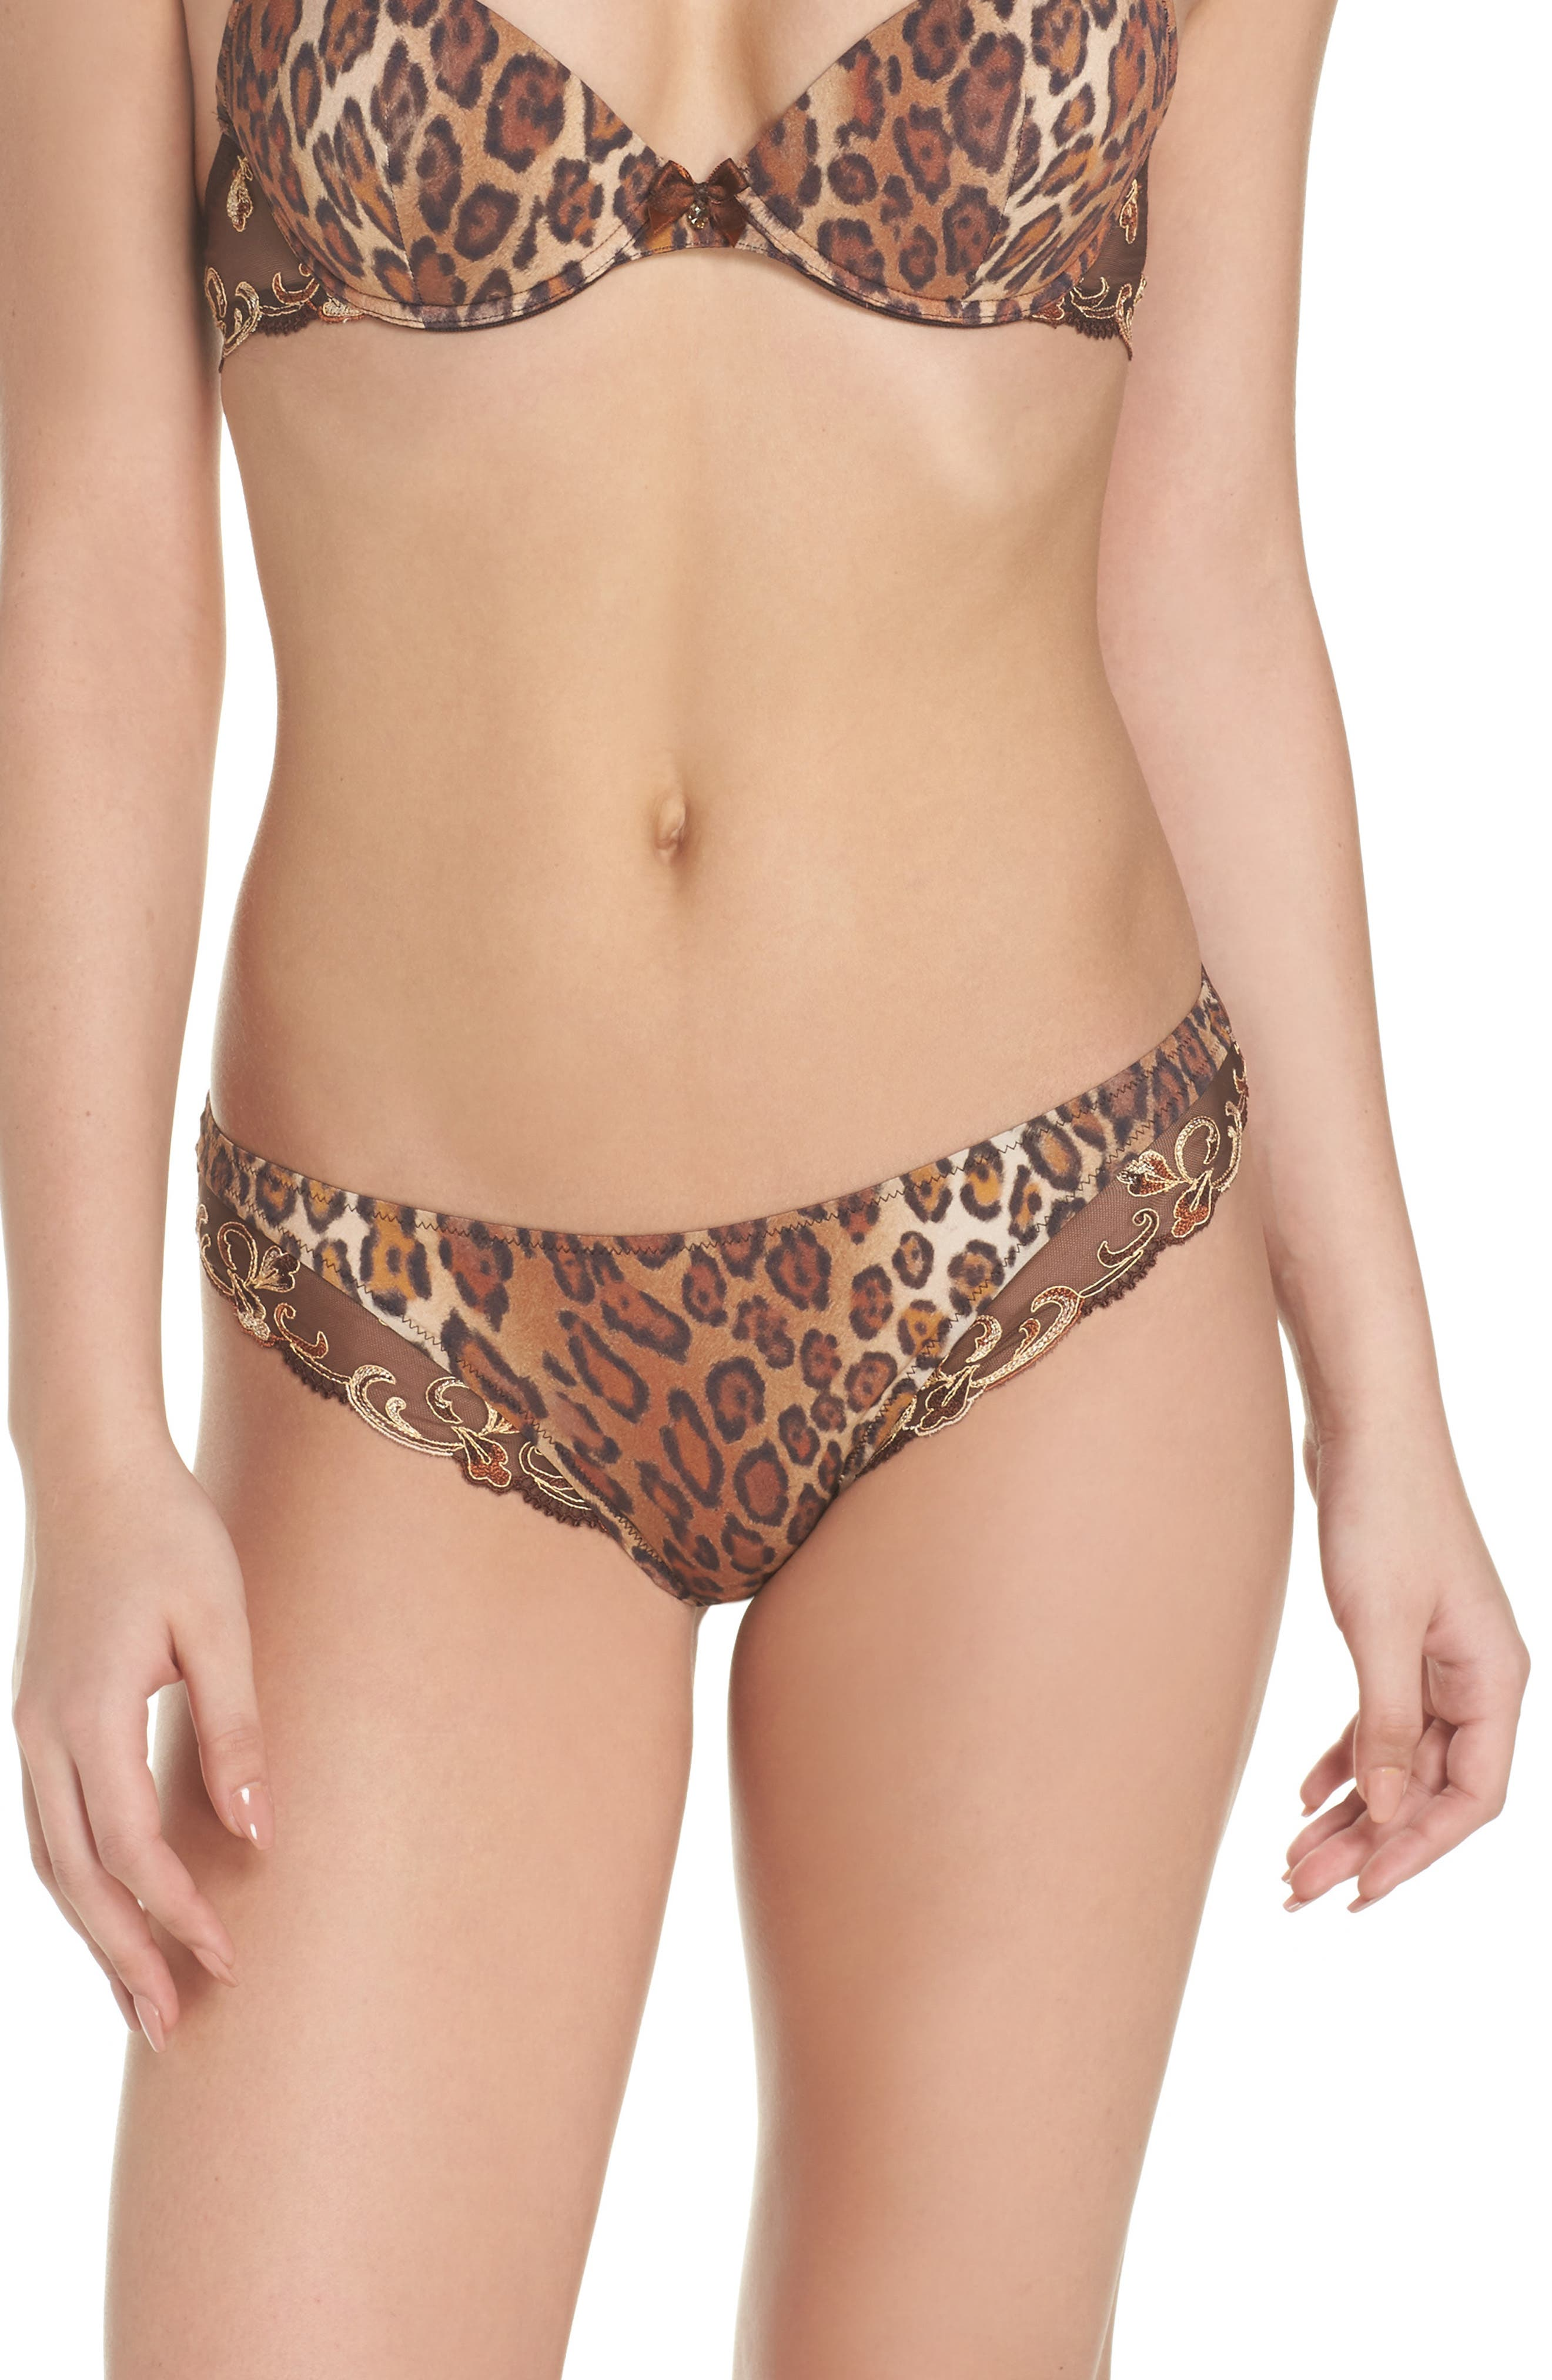 Epure by Lise Charmel Distinction Fauve Panties